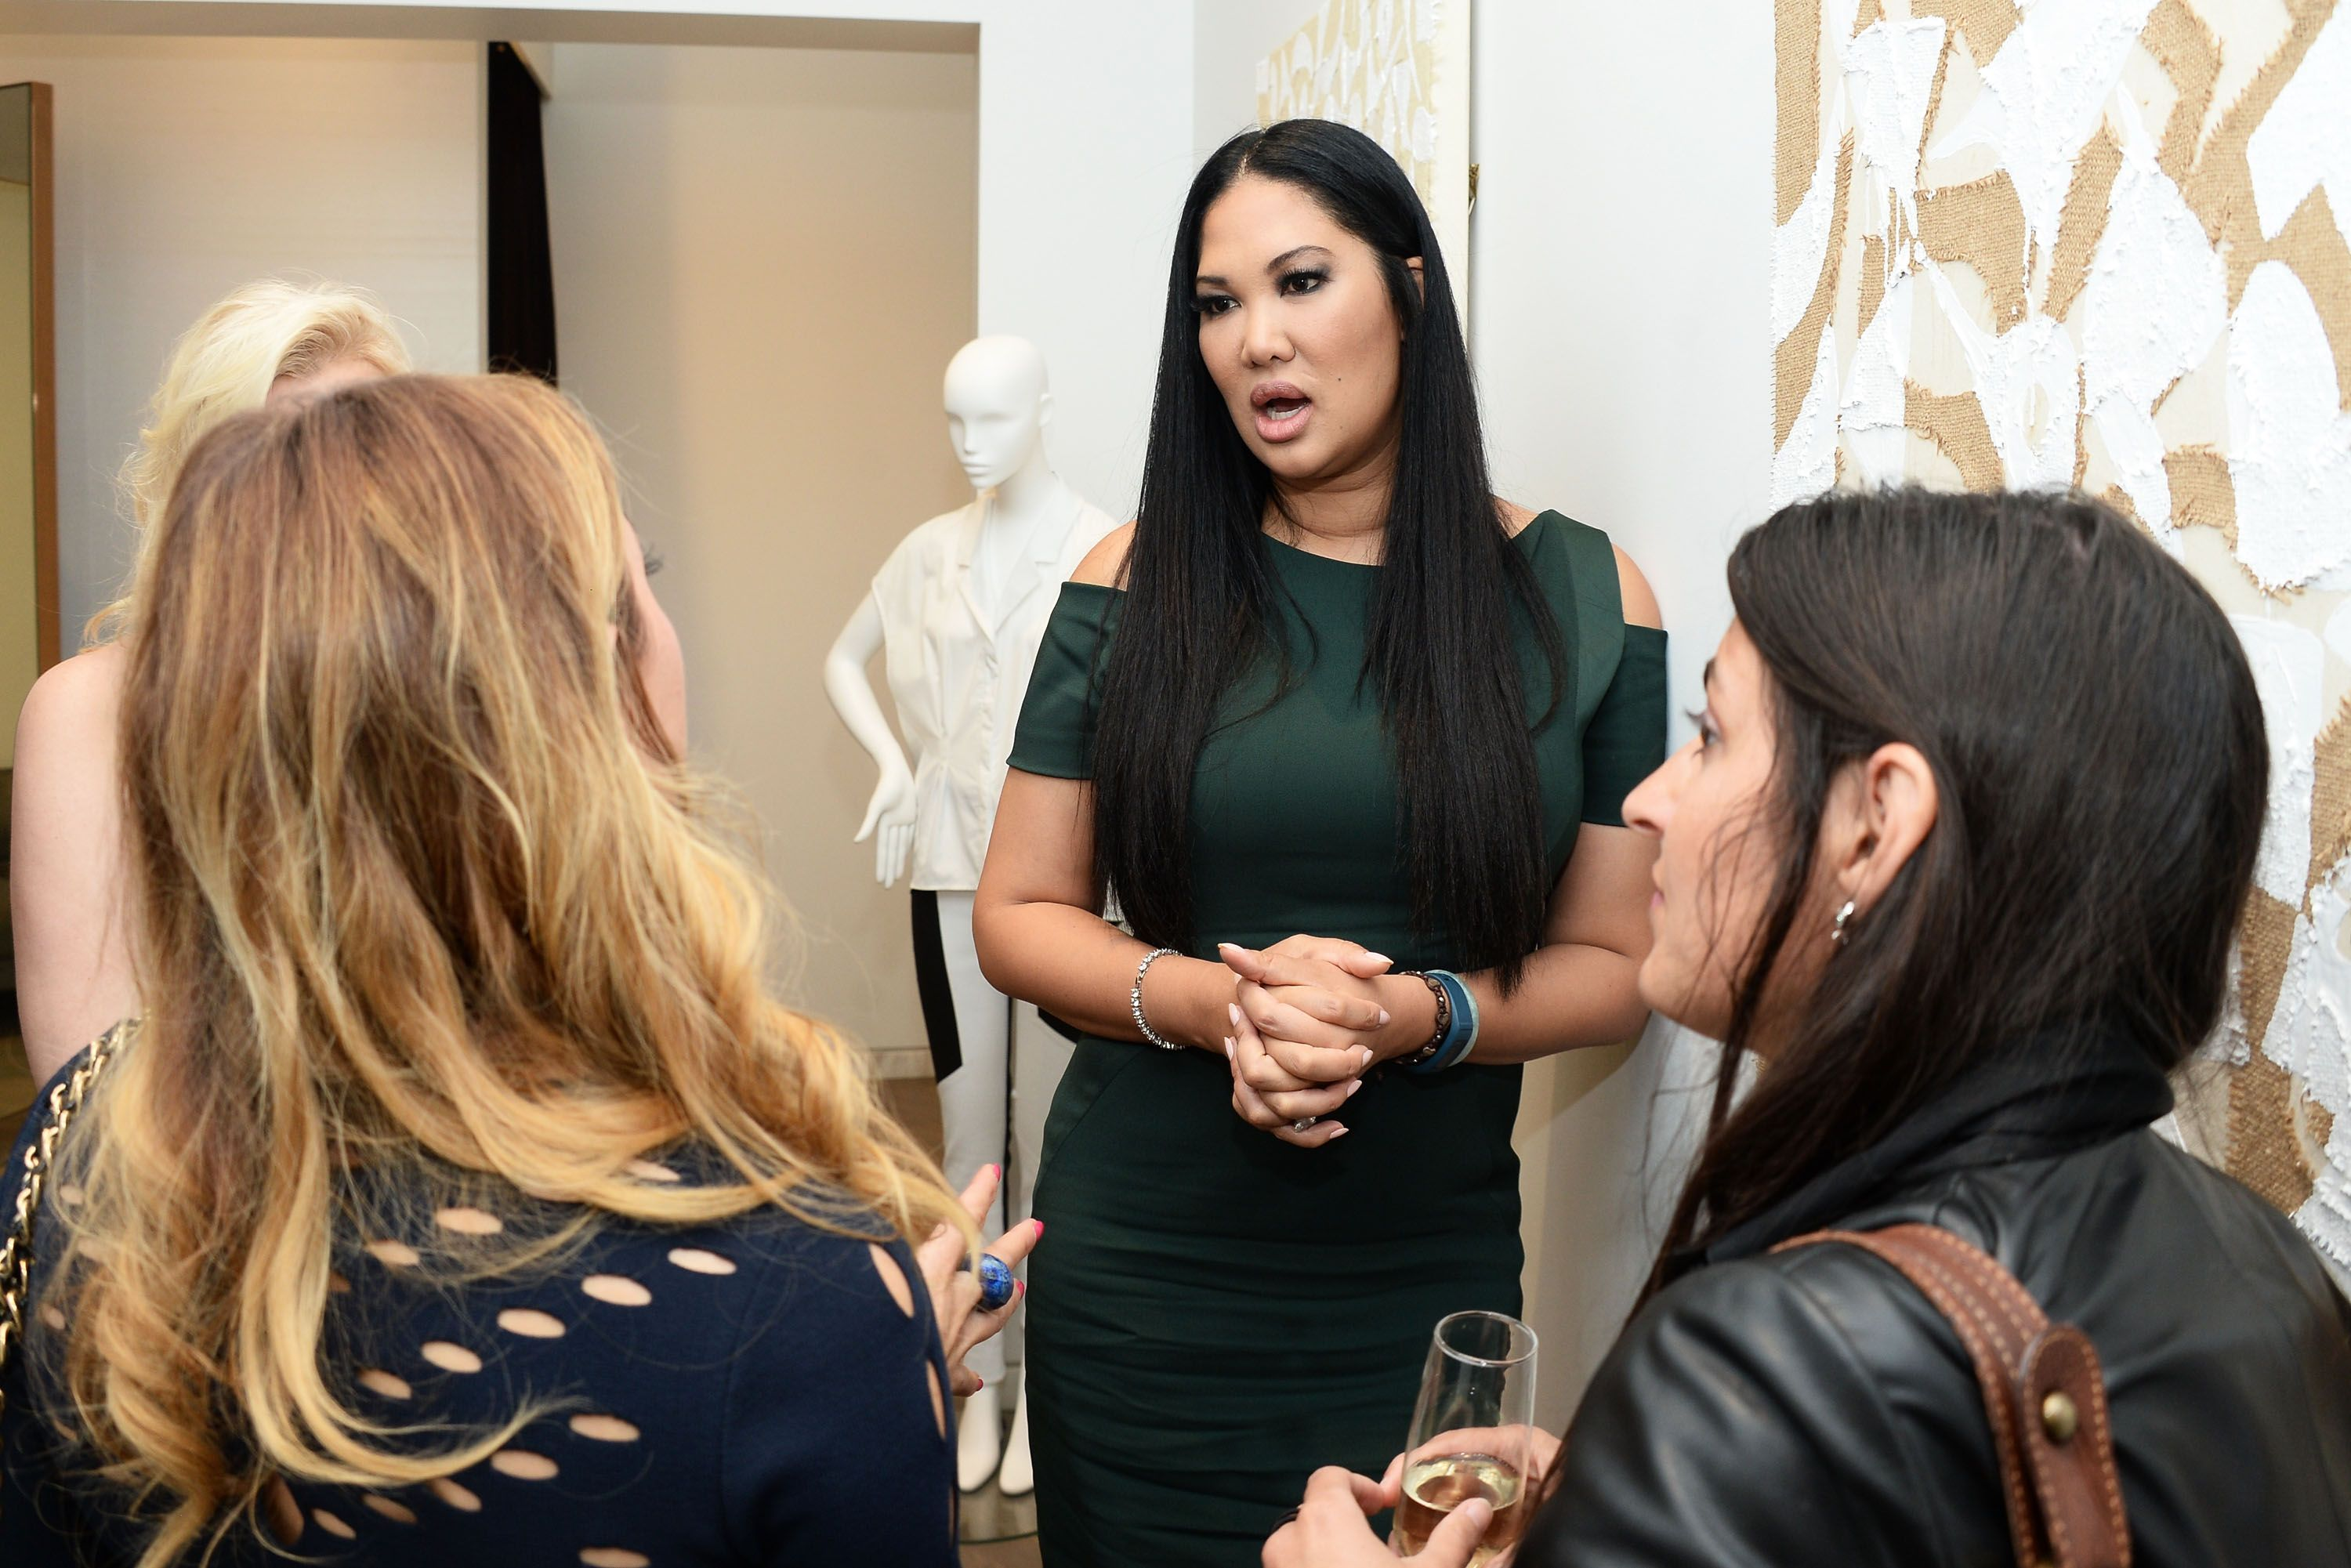 Kimora Lee Simmons speaks to guests at an event | Source: Getty Images/GlobalImagesUkraine